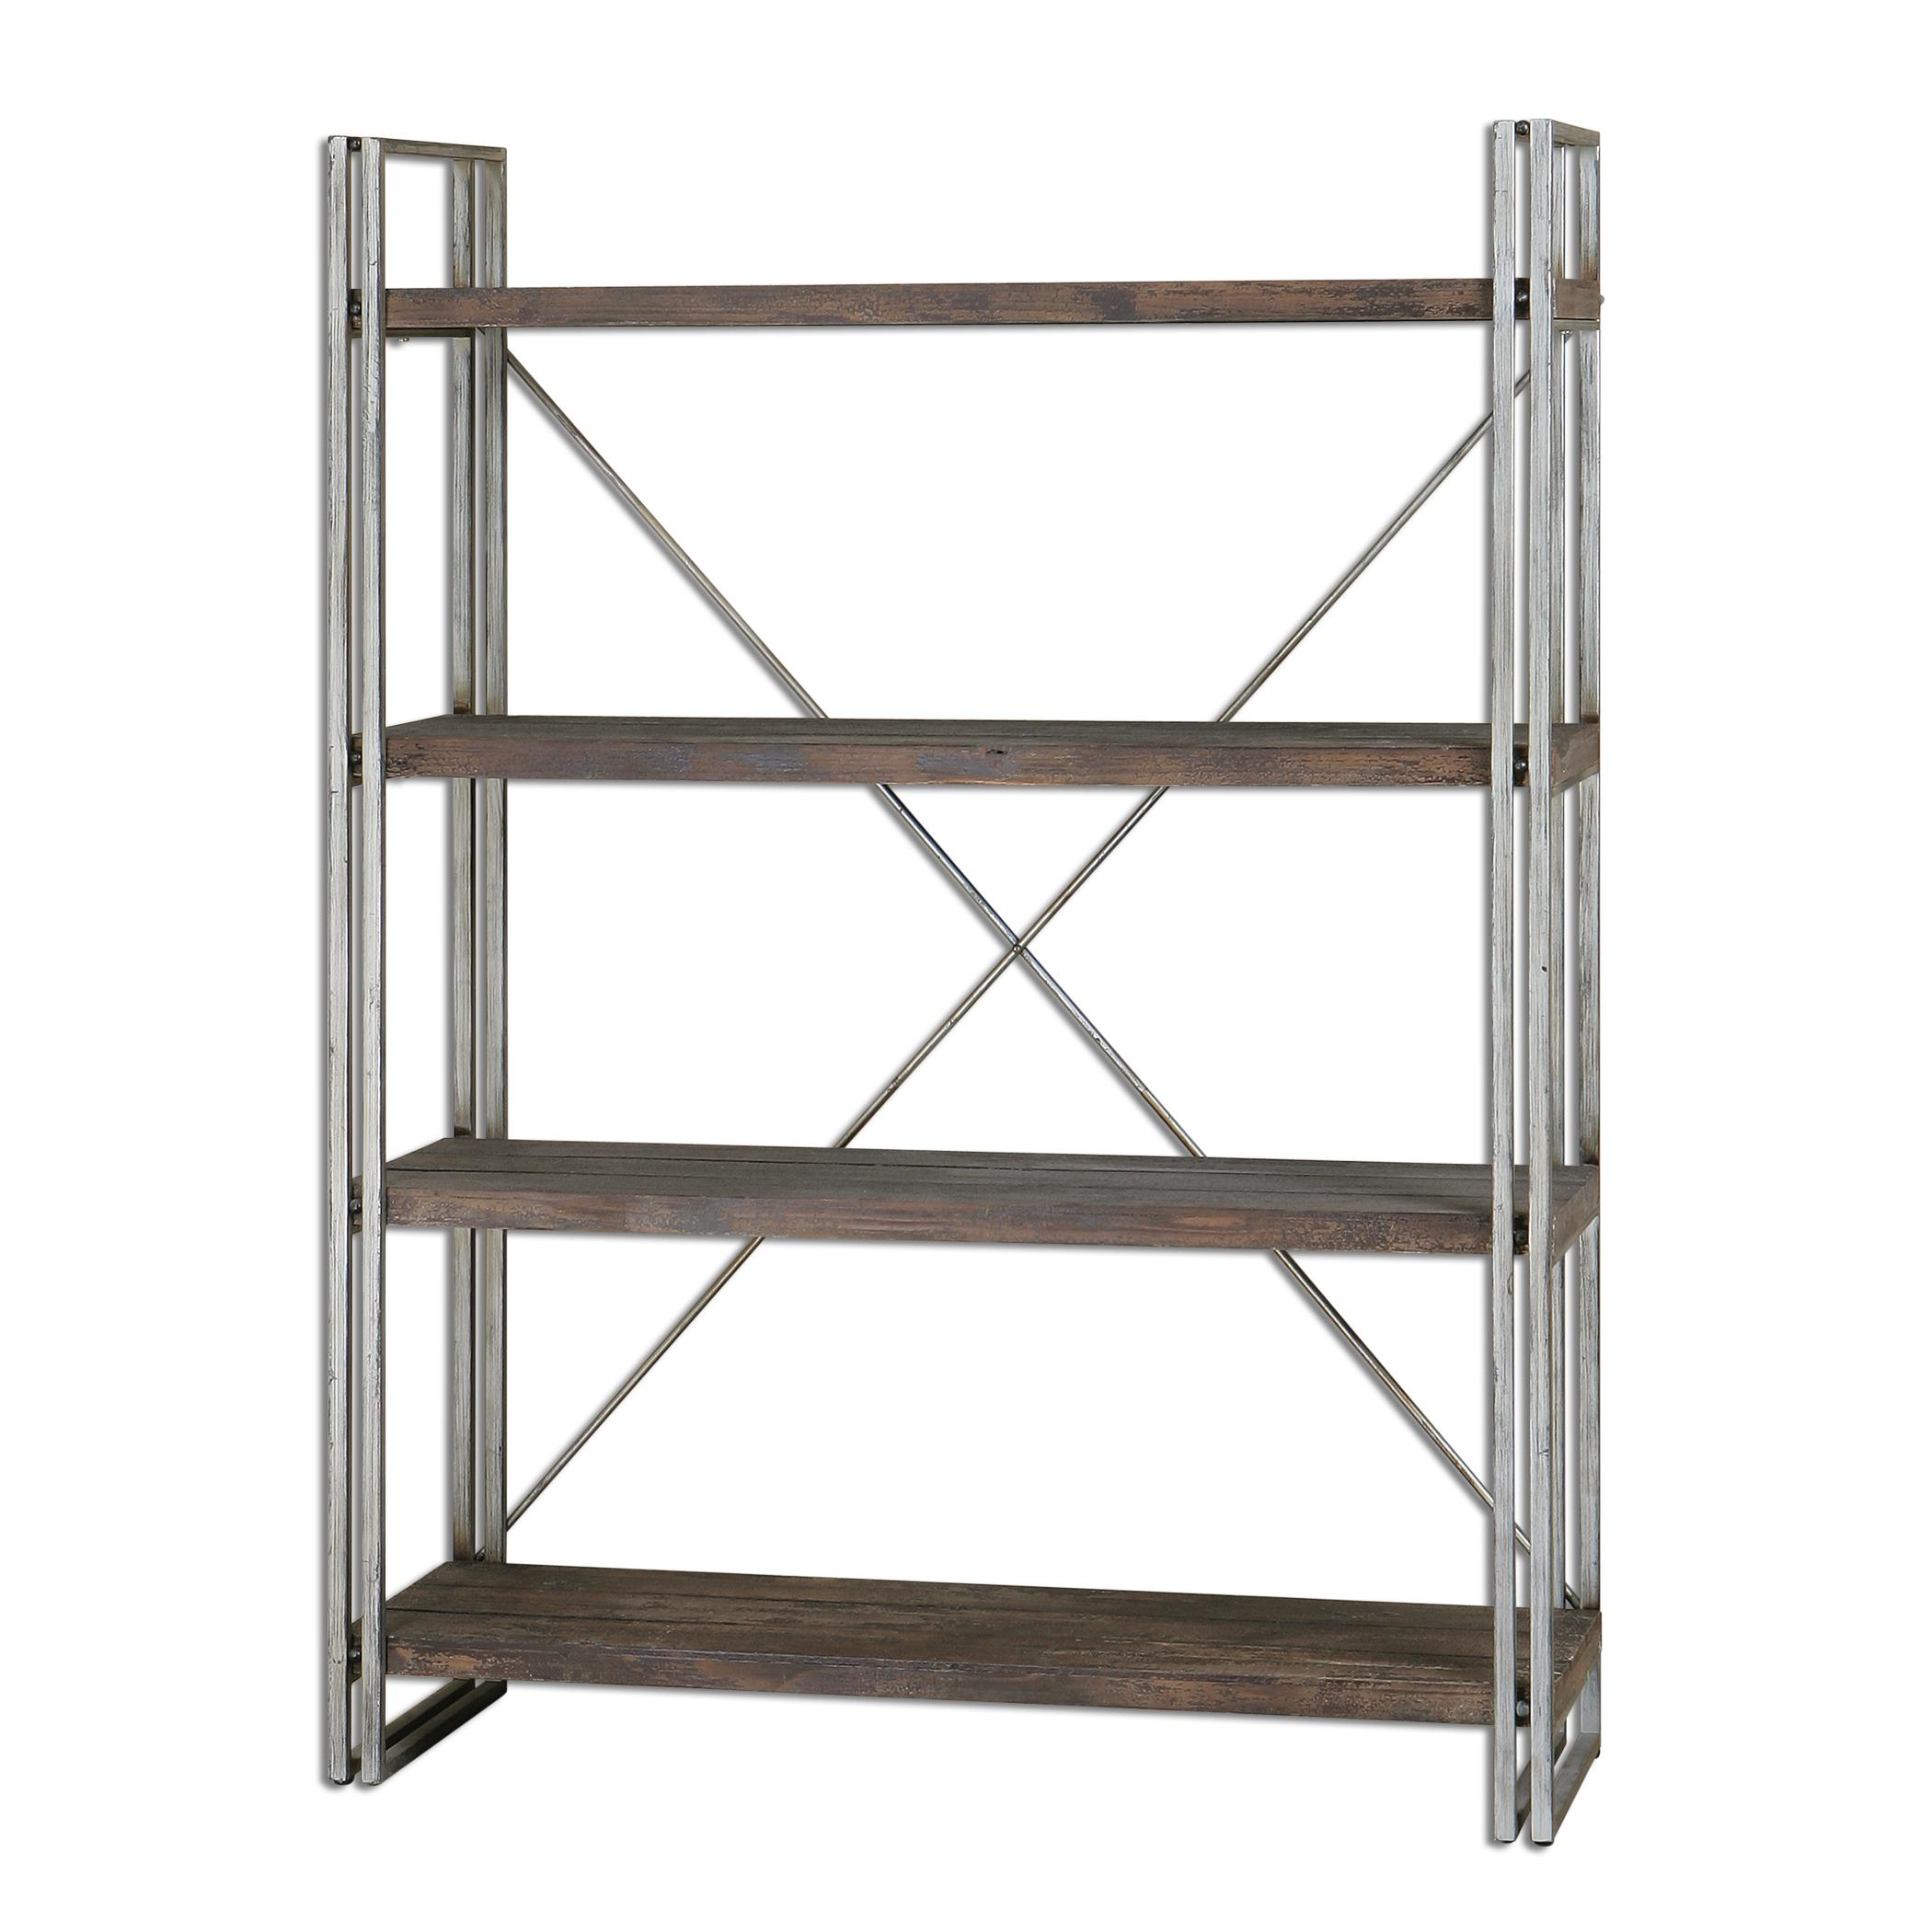 Uttermost Accent Furniture Greeley Metal Etagere - Item Number: 24396